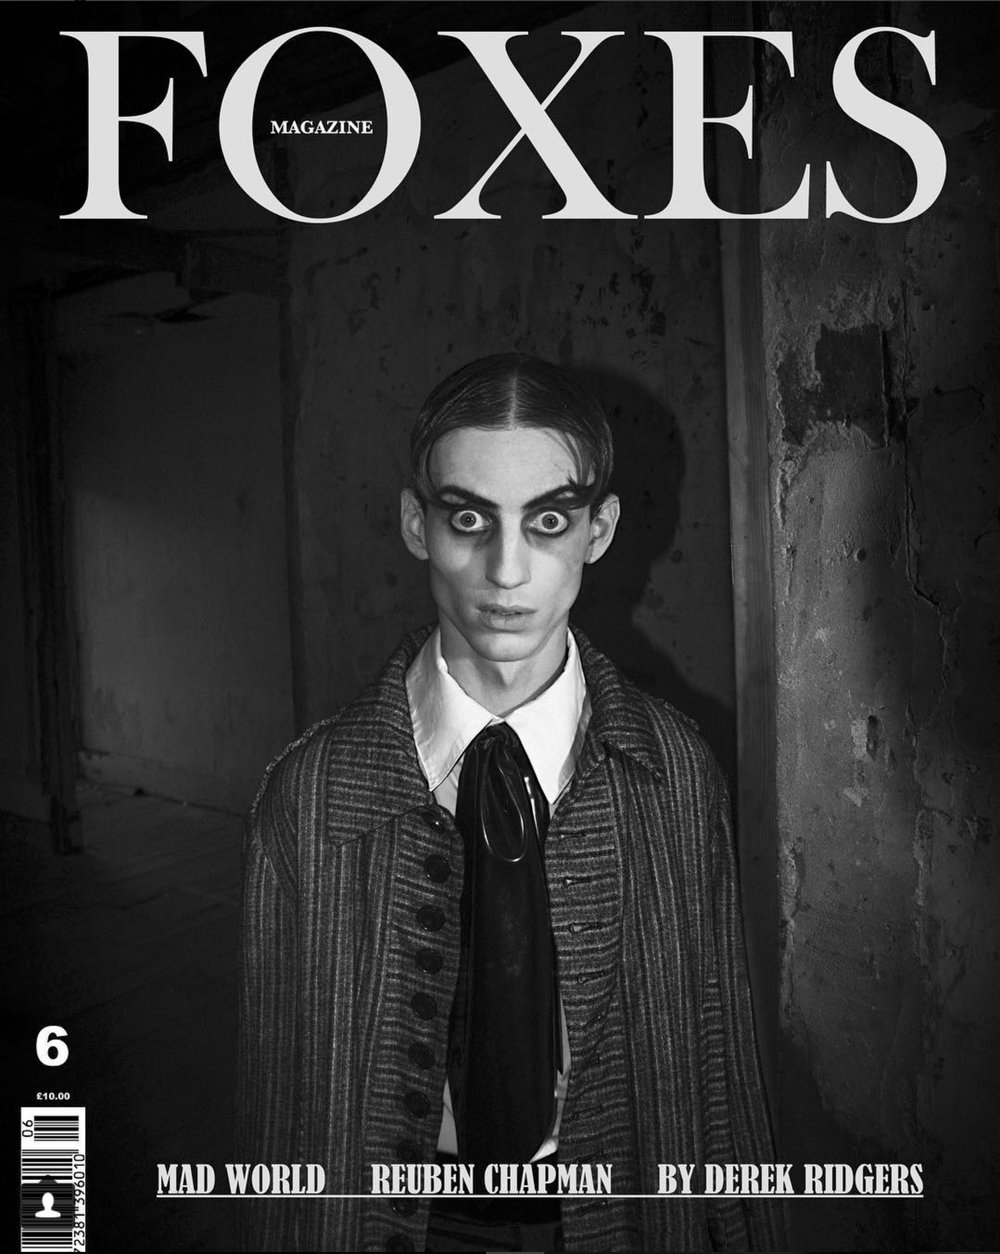 Reuben Chapman for Foxes magazine.